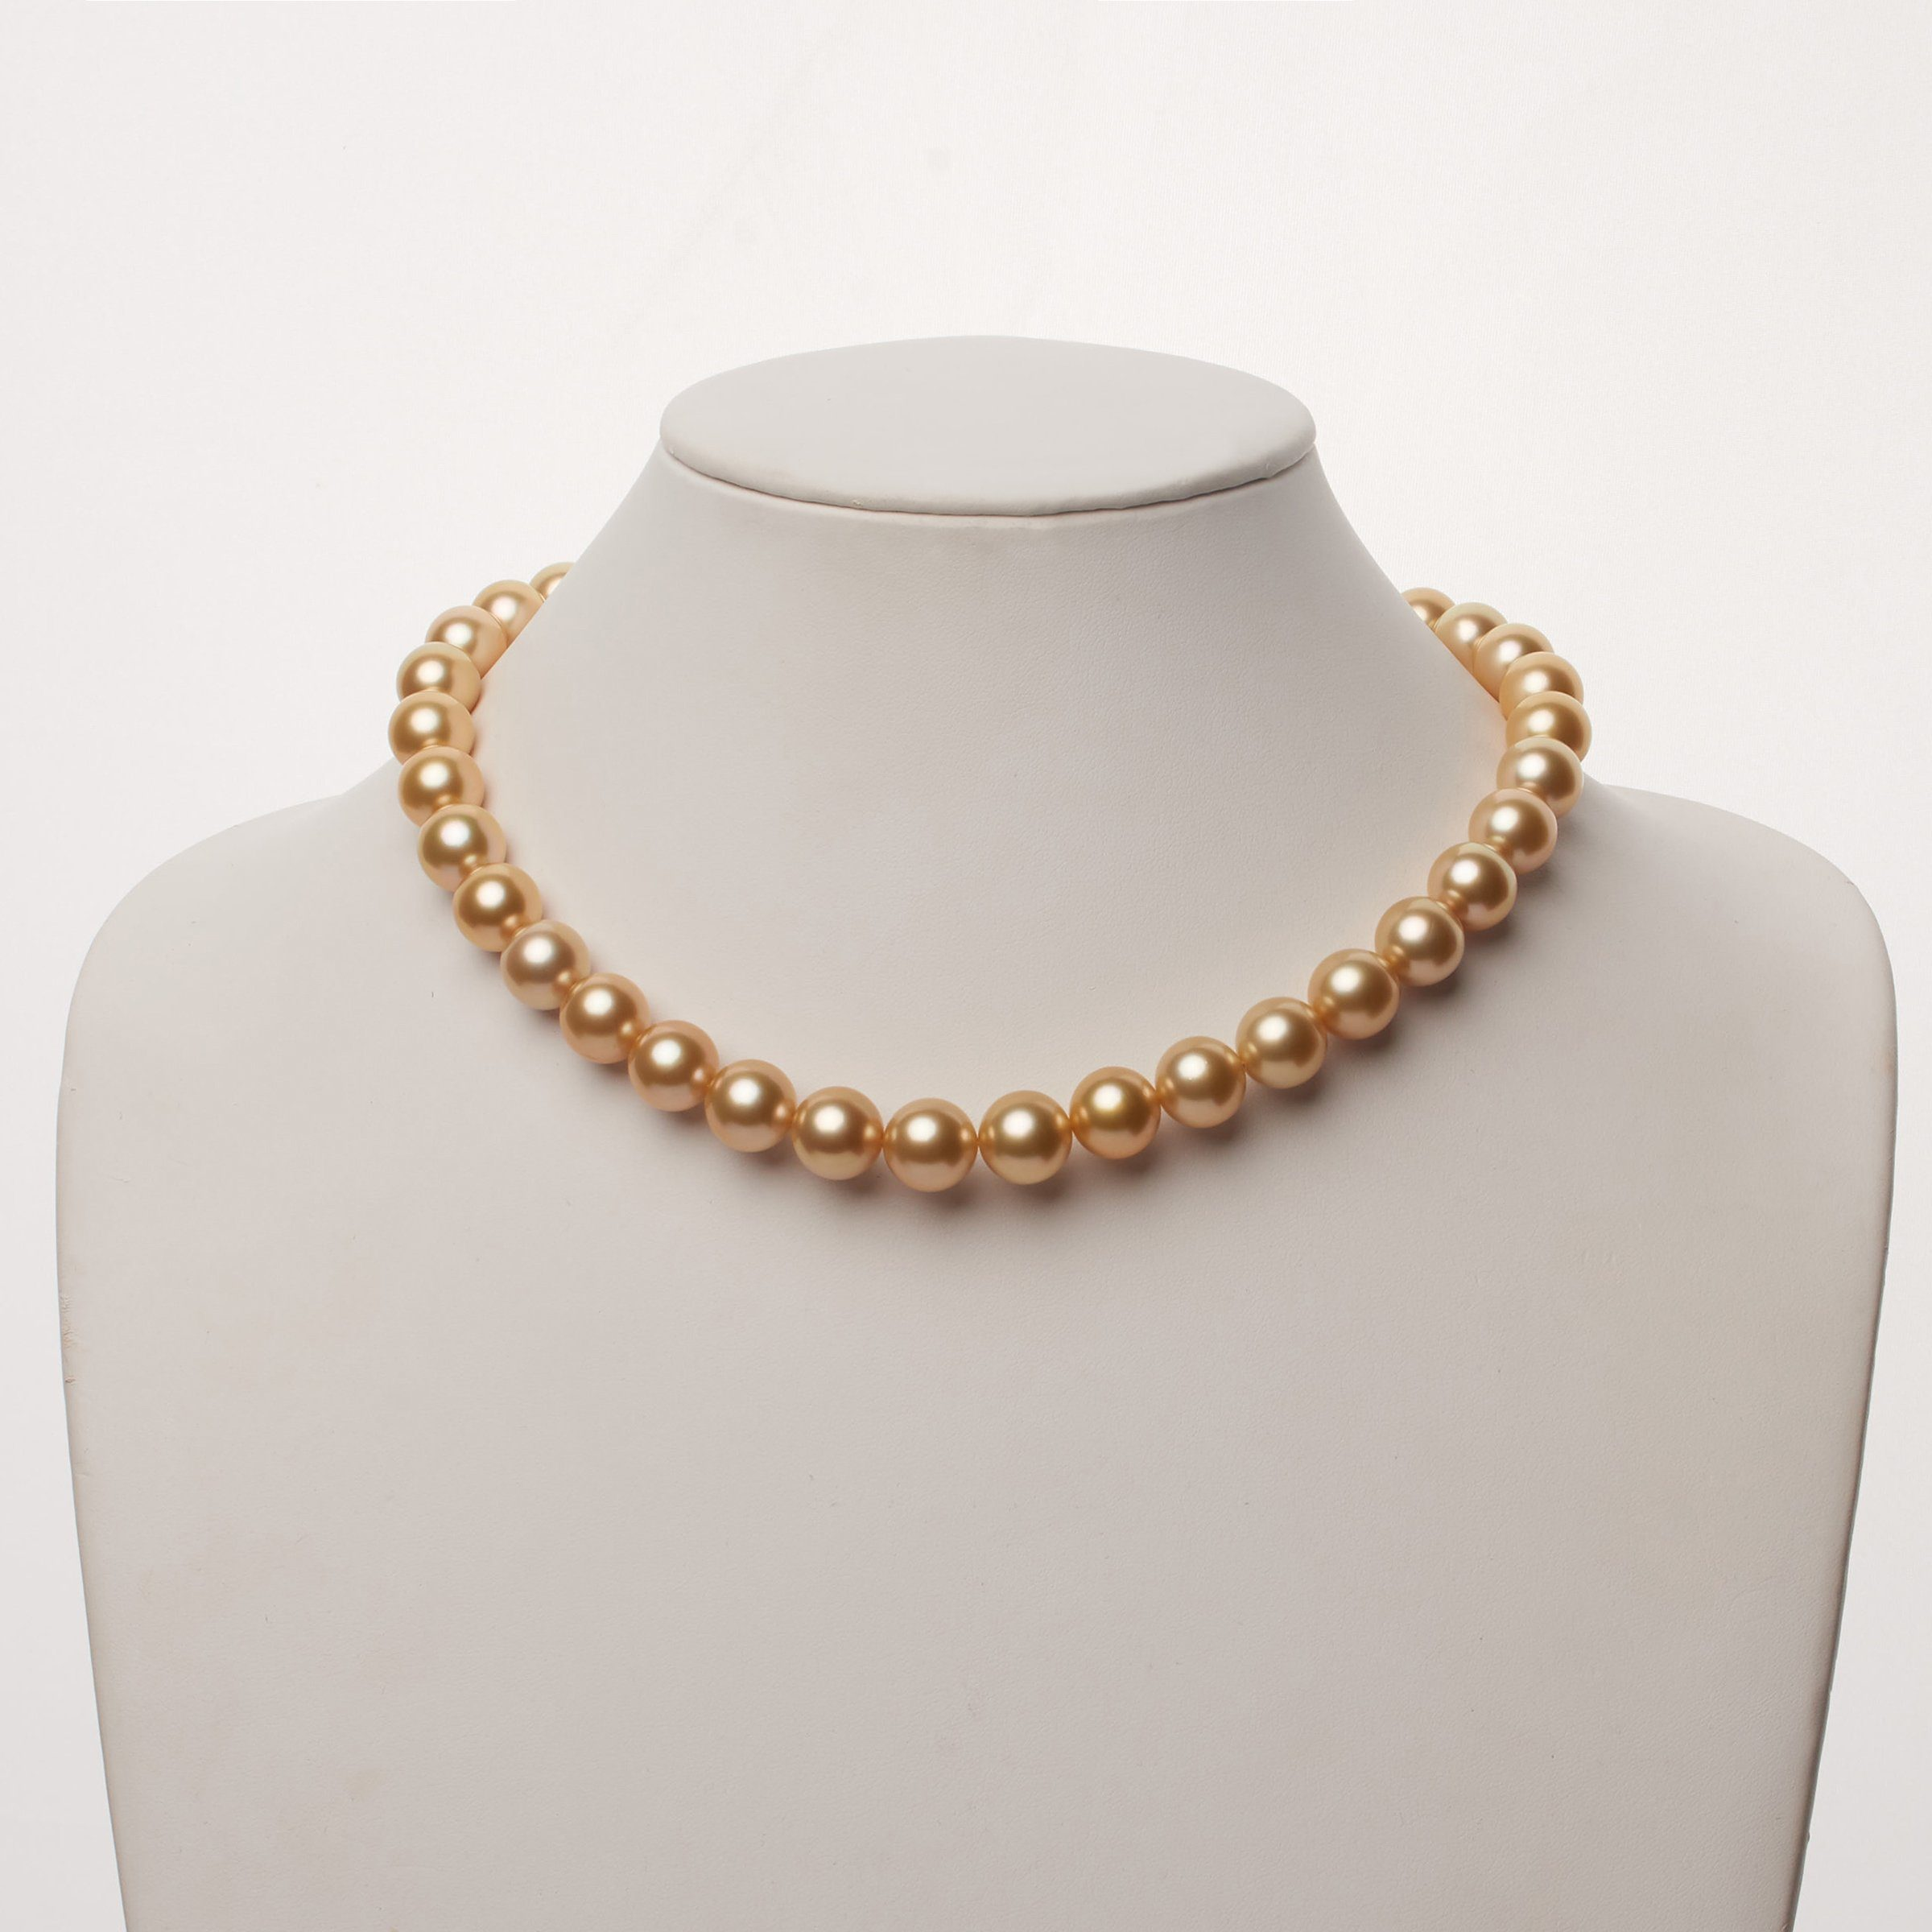 11.0-12.0 mm AAA Golden South Sea Round Pearl Necklace